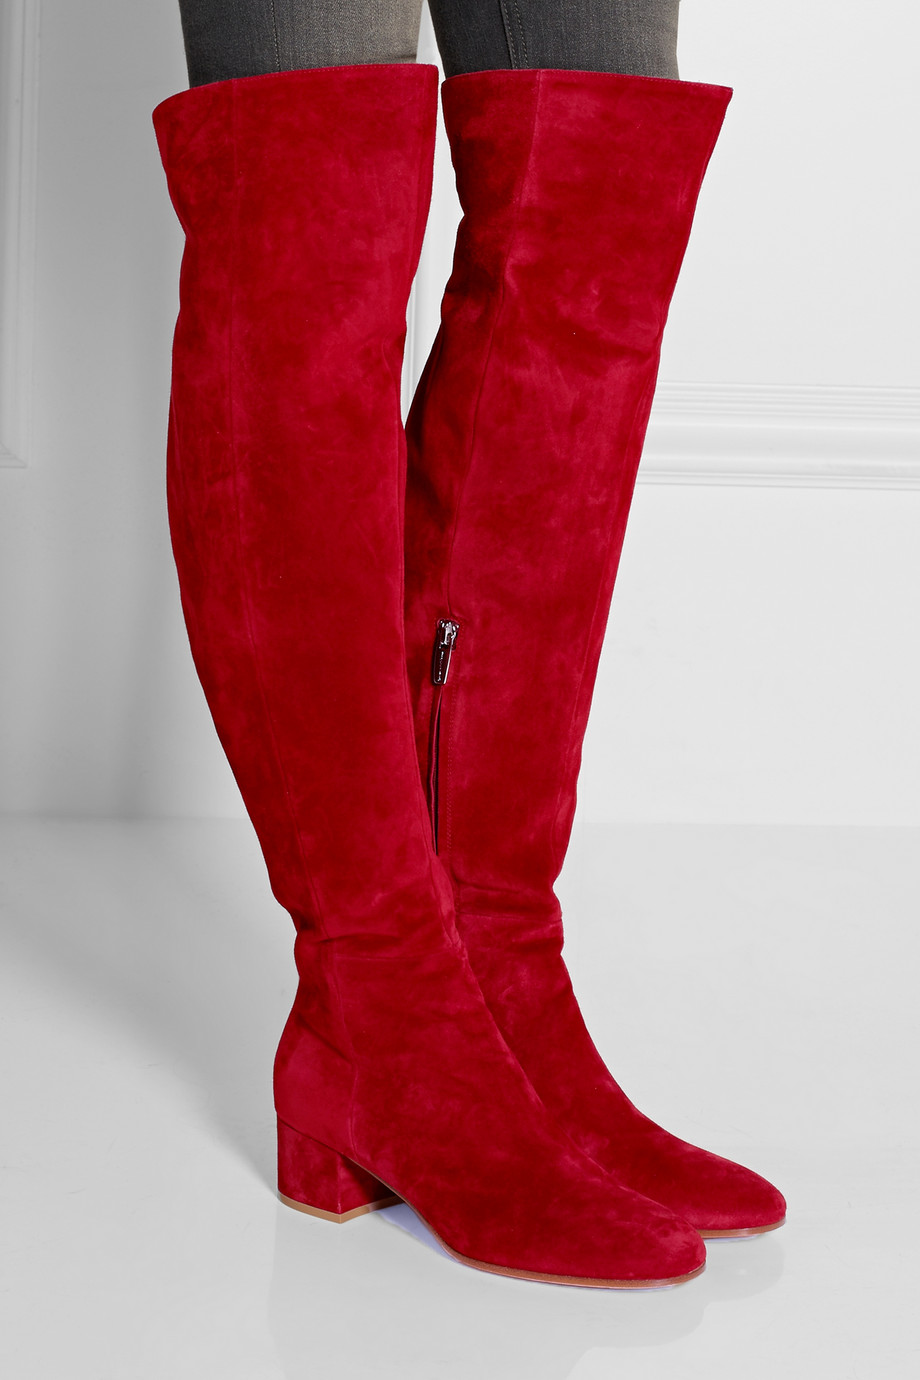 Real Pic Winter Red Suede Round Toe Over The Knee Boots 2016 Thick Heels Woman Fashion Tight High Boots Winter Long Boots 2016 autumn winter hot selling royal blue suede over the knee high heel boots round toe thick heels high boots for woman